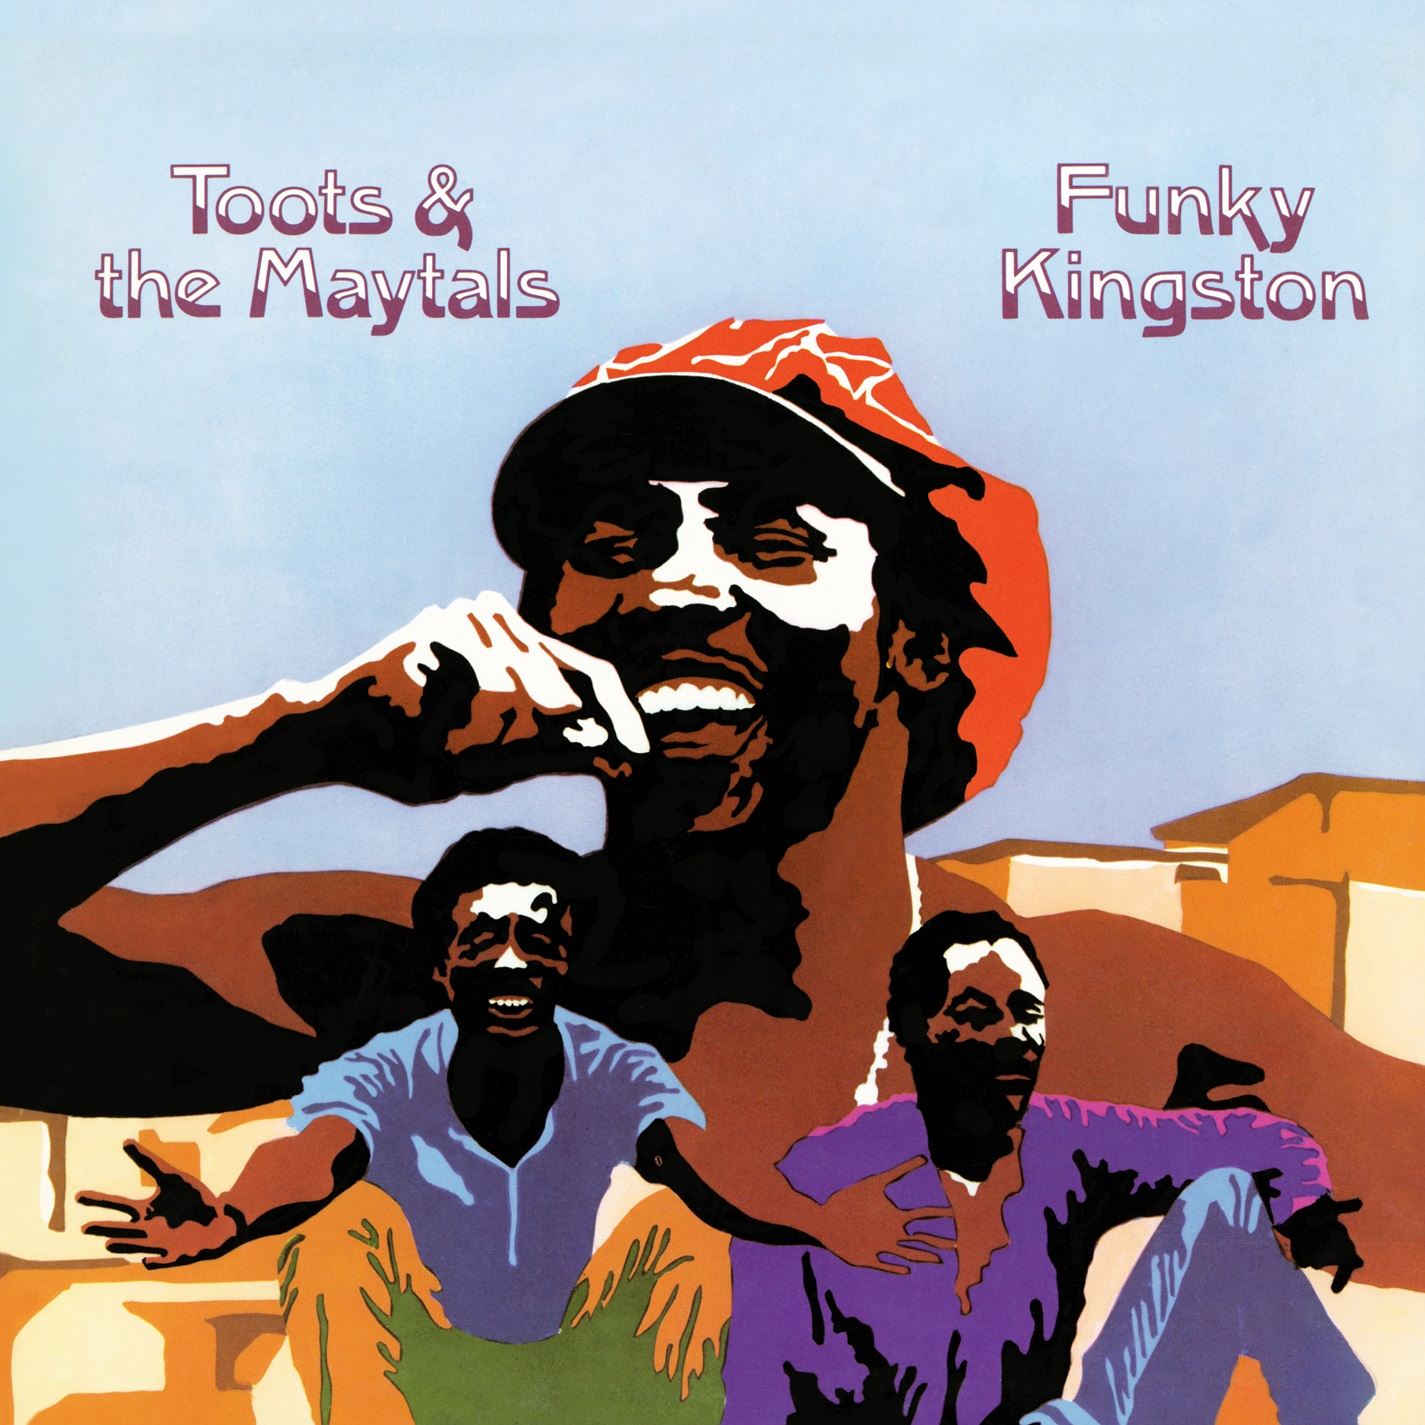 Toots & Maytals - Funky Kingston [Record Store Day] [RSD Drops 2021]